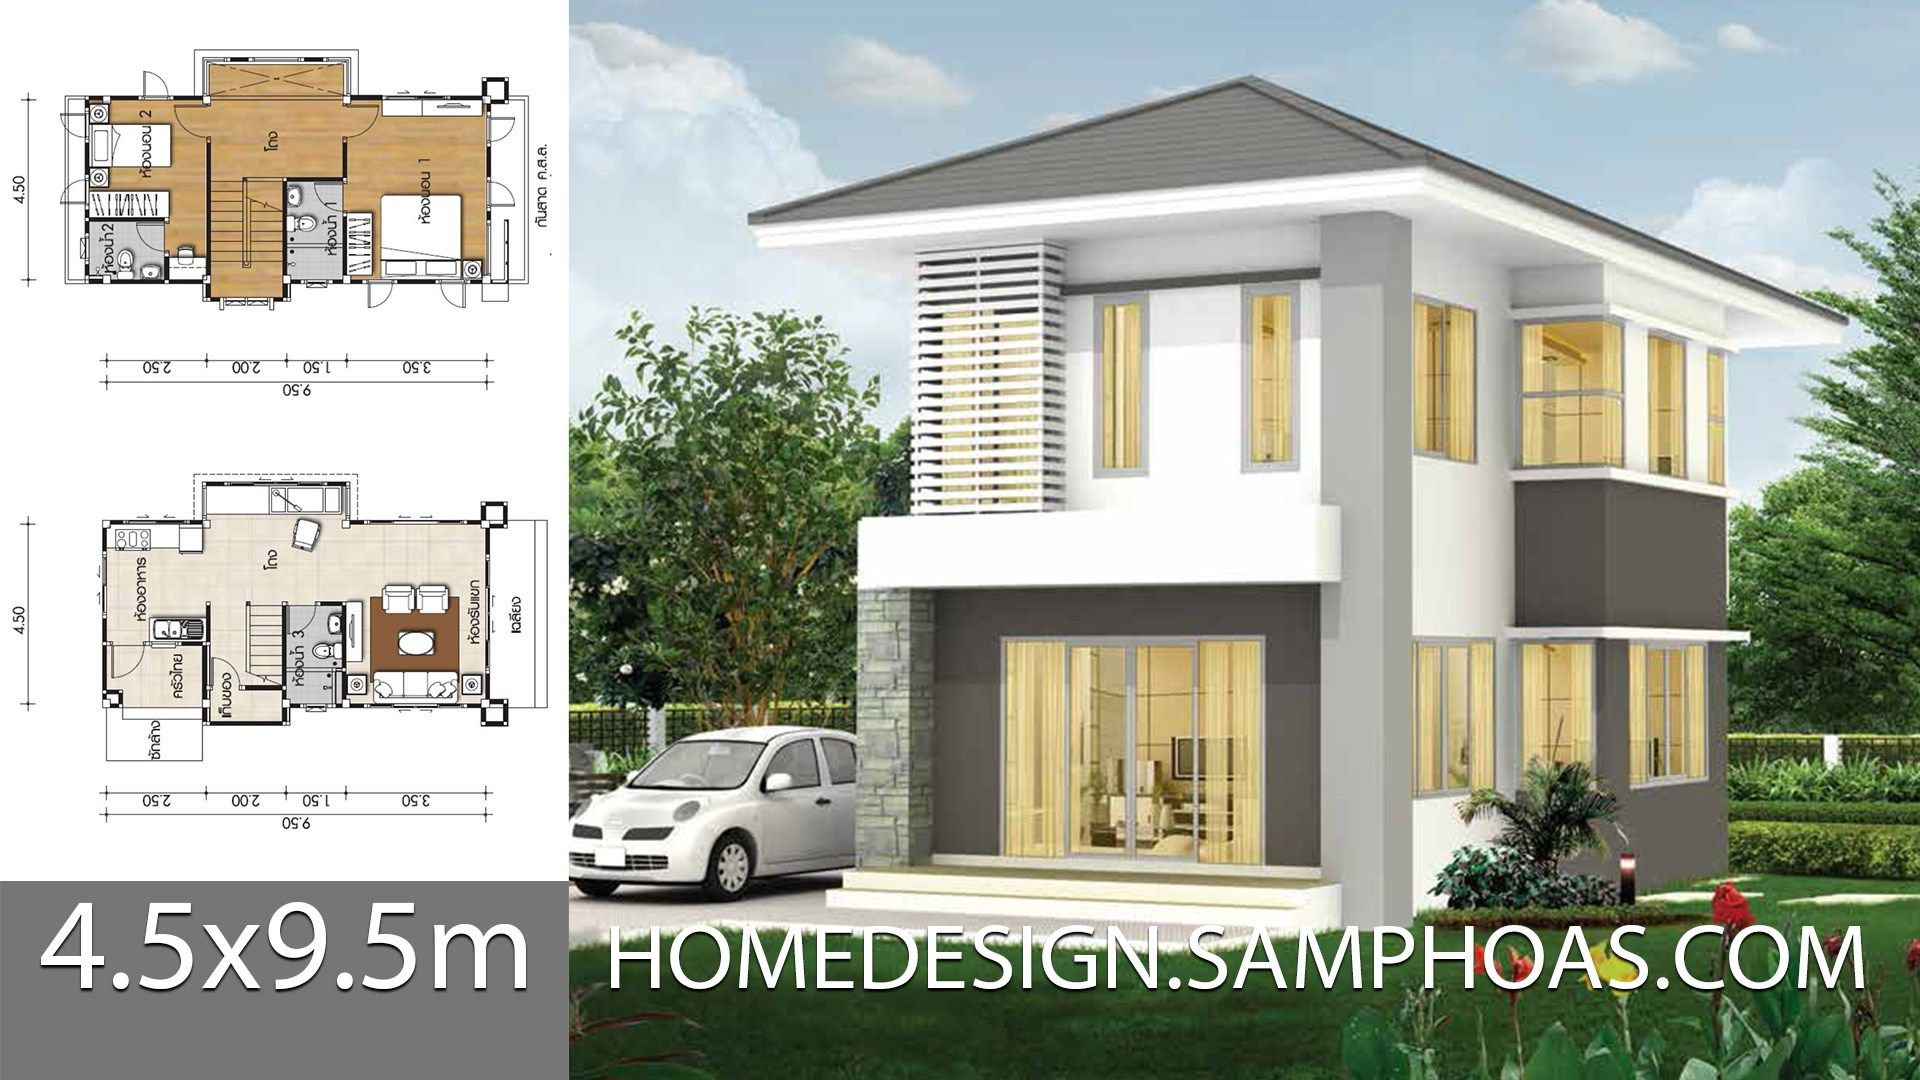 Small House Plans 4 5x9 5m With 2 Bedrooms Ground Level Car Parking Outside Living Room Dining Room Kitchen Back In 2020 Small House House Plans Small House Plans